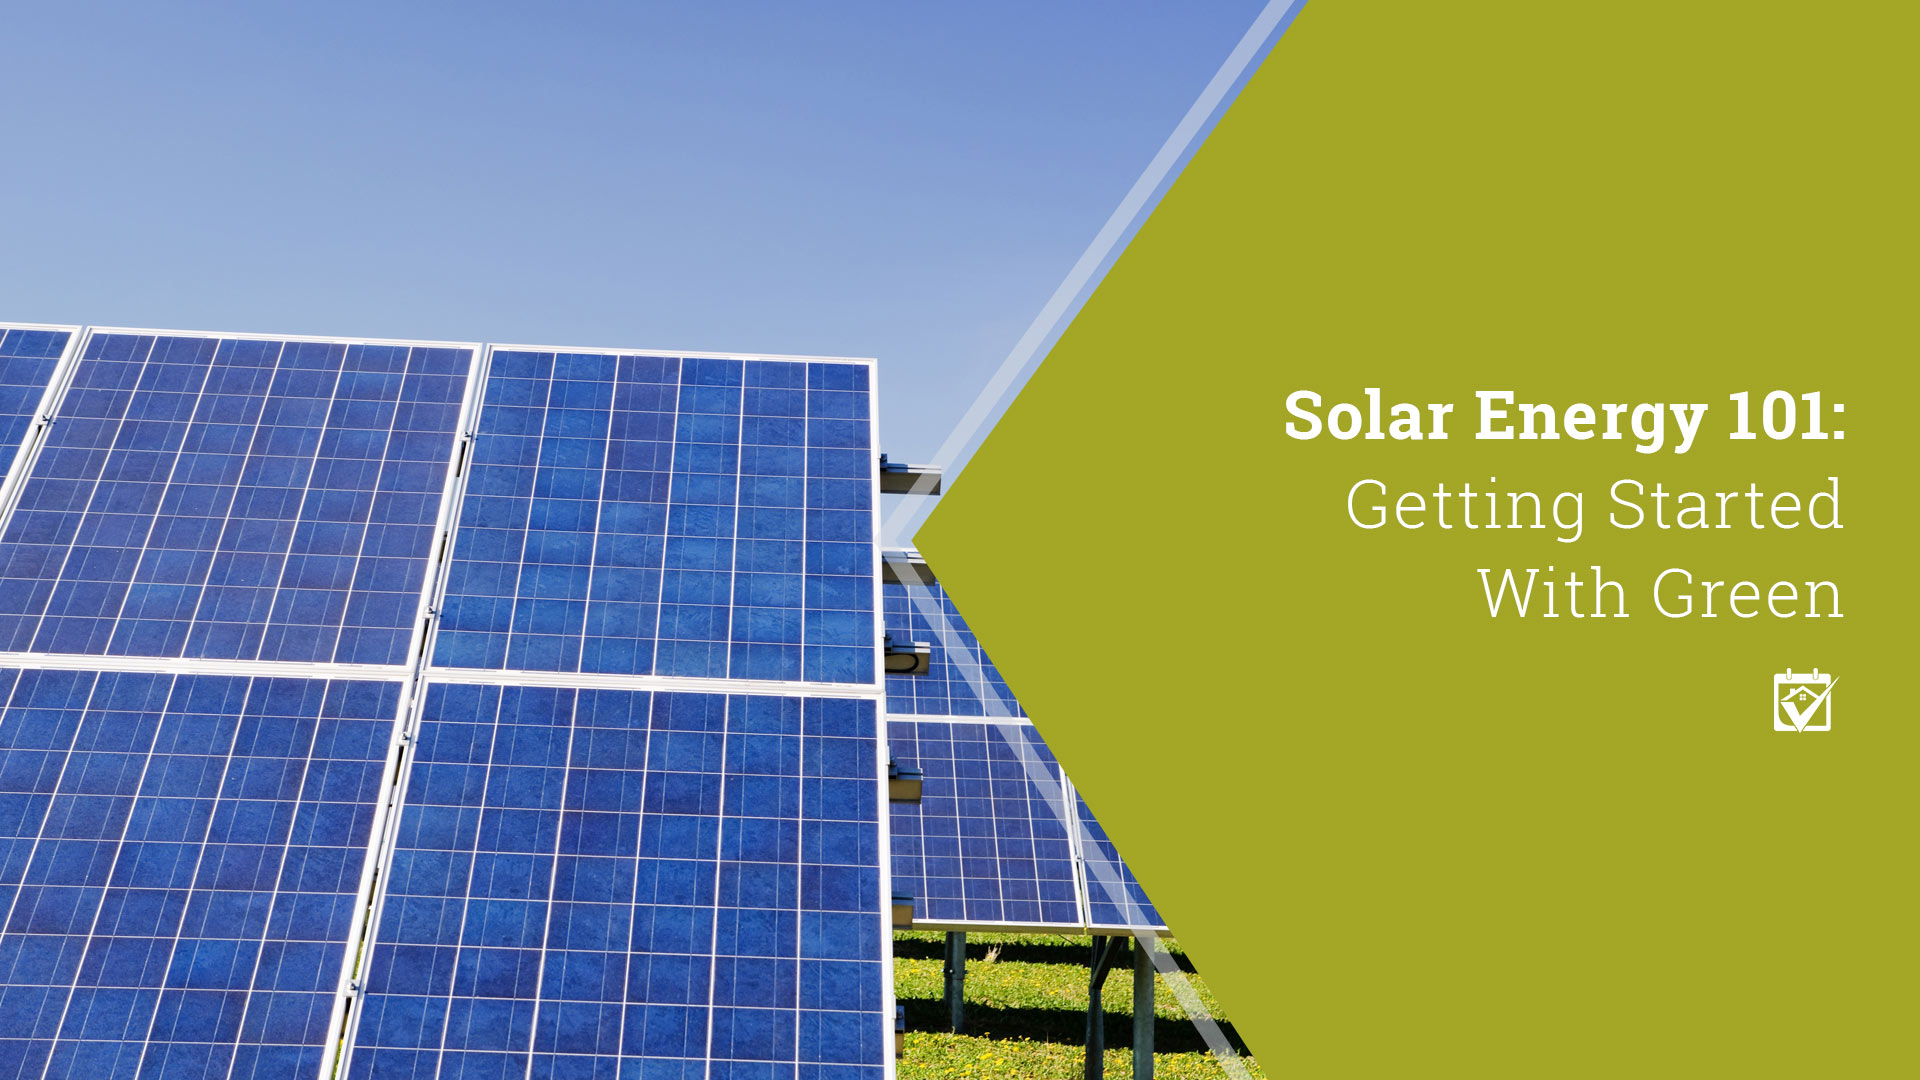 Solar Energy 101: Getting Started With Green